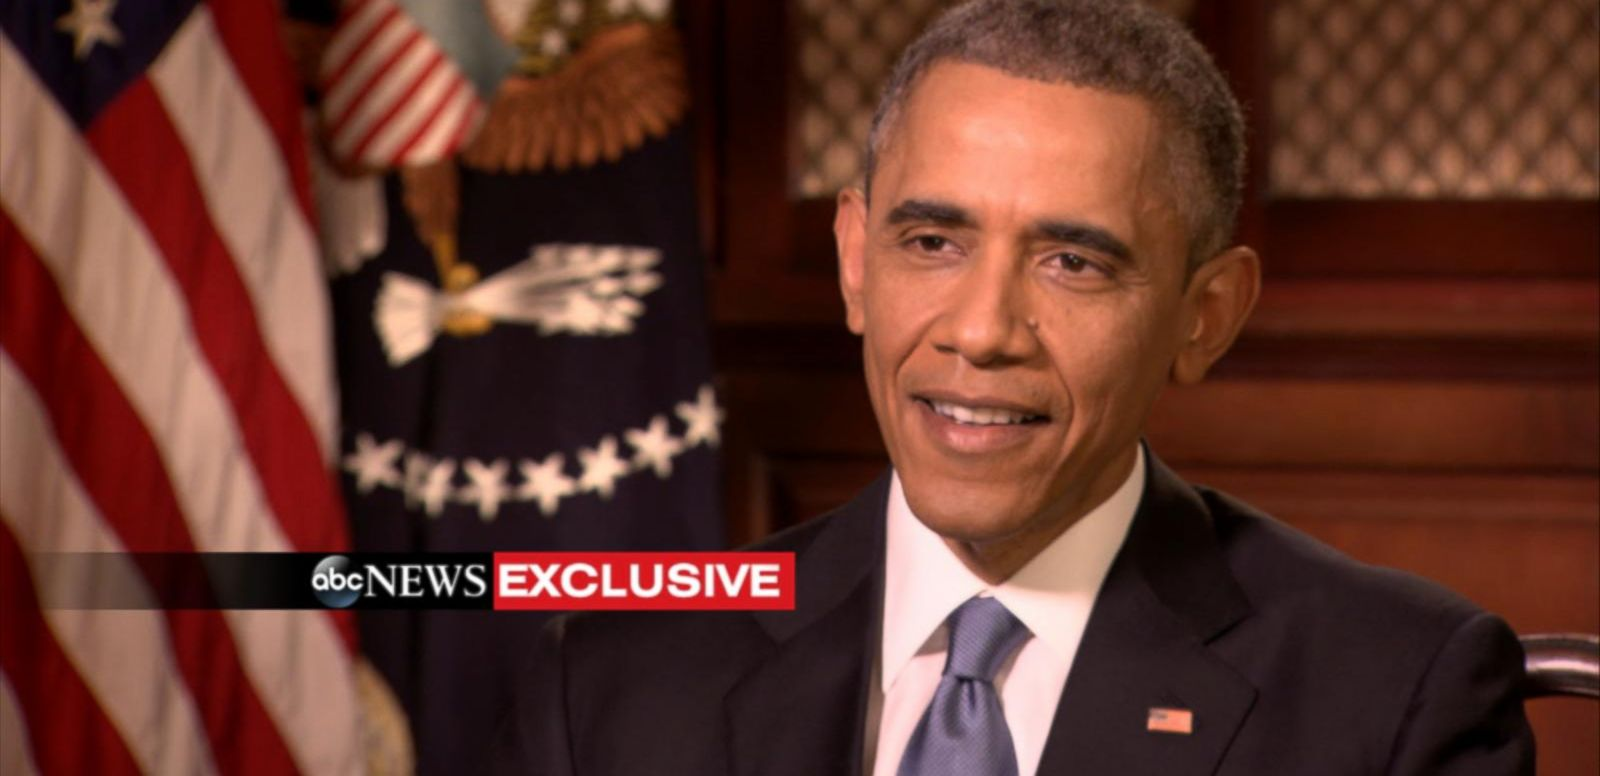 VIDEO: President weighs in on 2016 presidential race.